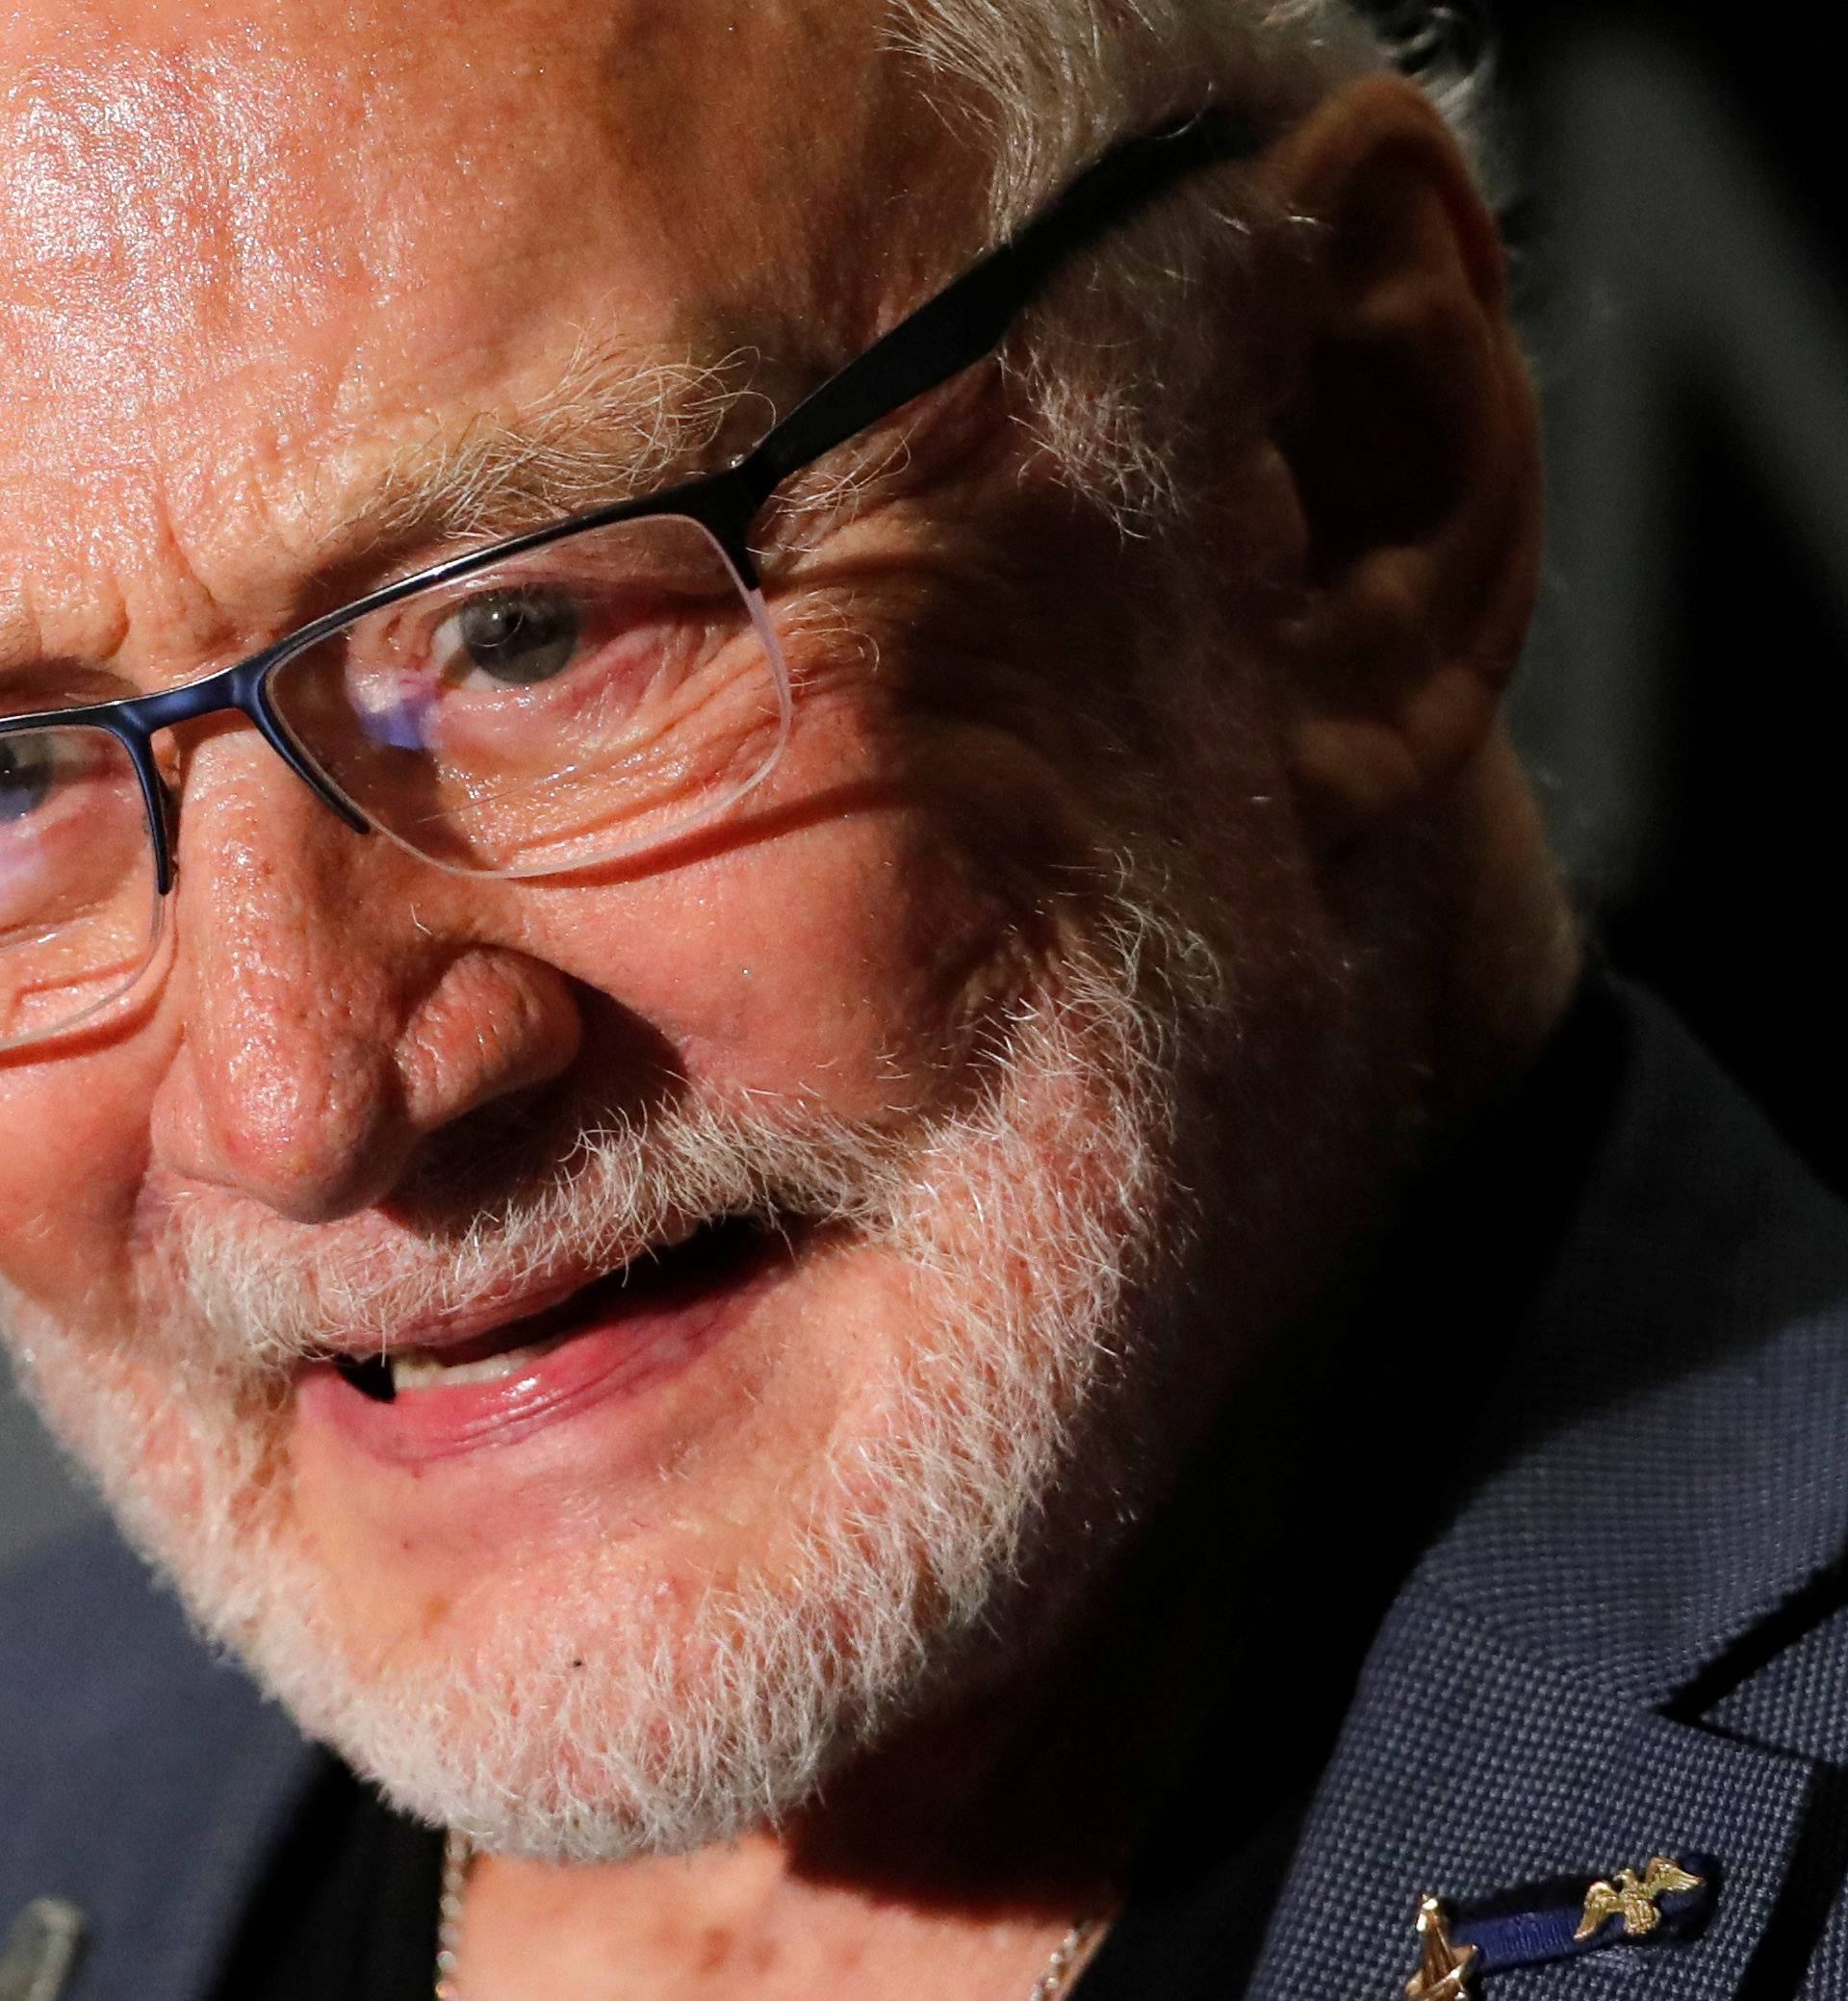 Former U.S. astronaut Buzz Aldrin addresses a news conference of the Starmus Festival V in Zurich